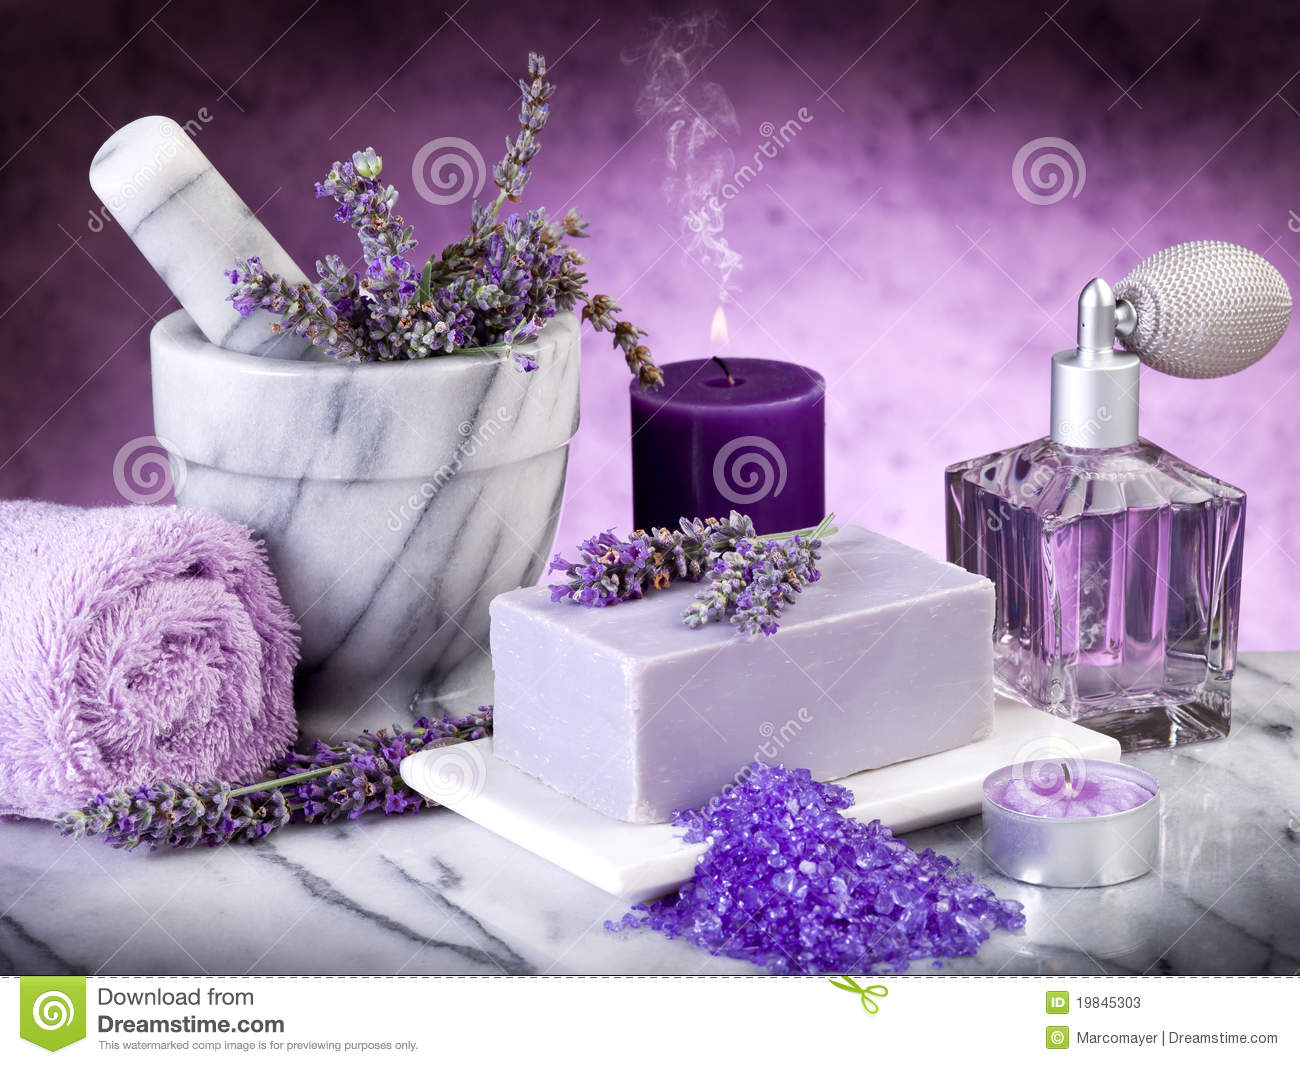 Spa Lavender Products Stock Photos - Image: 19845303 Z Table Chart